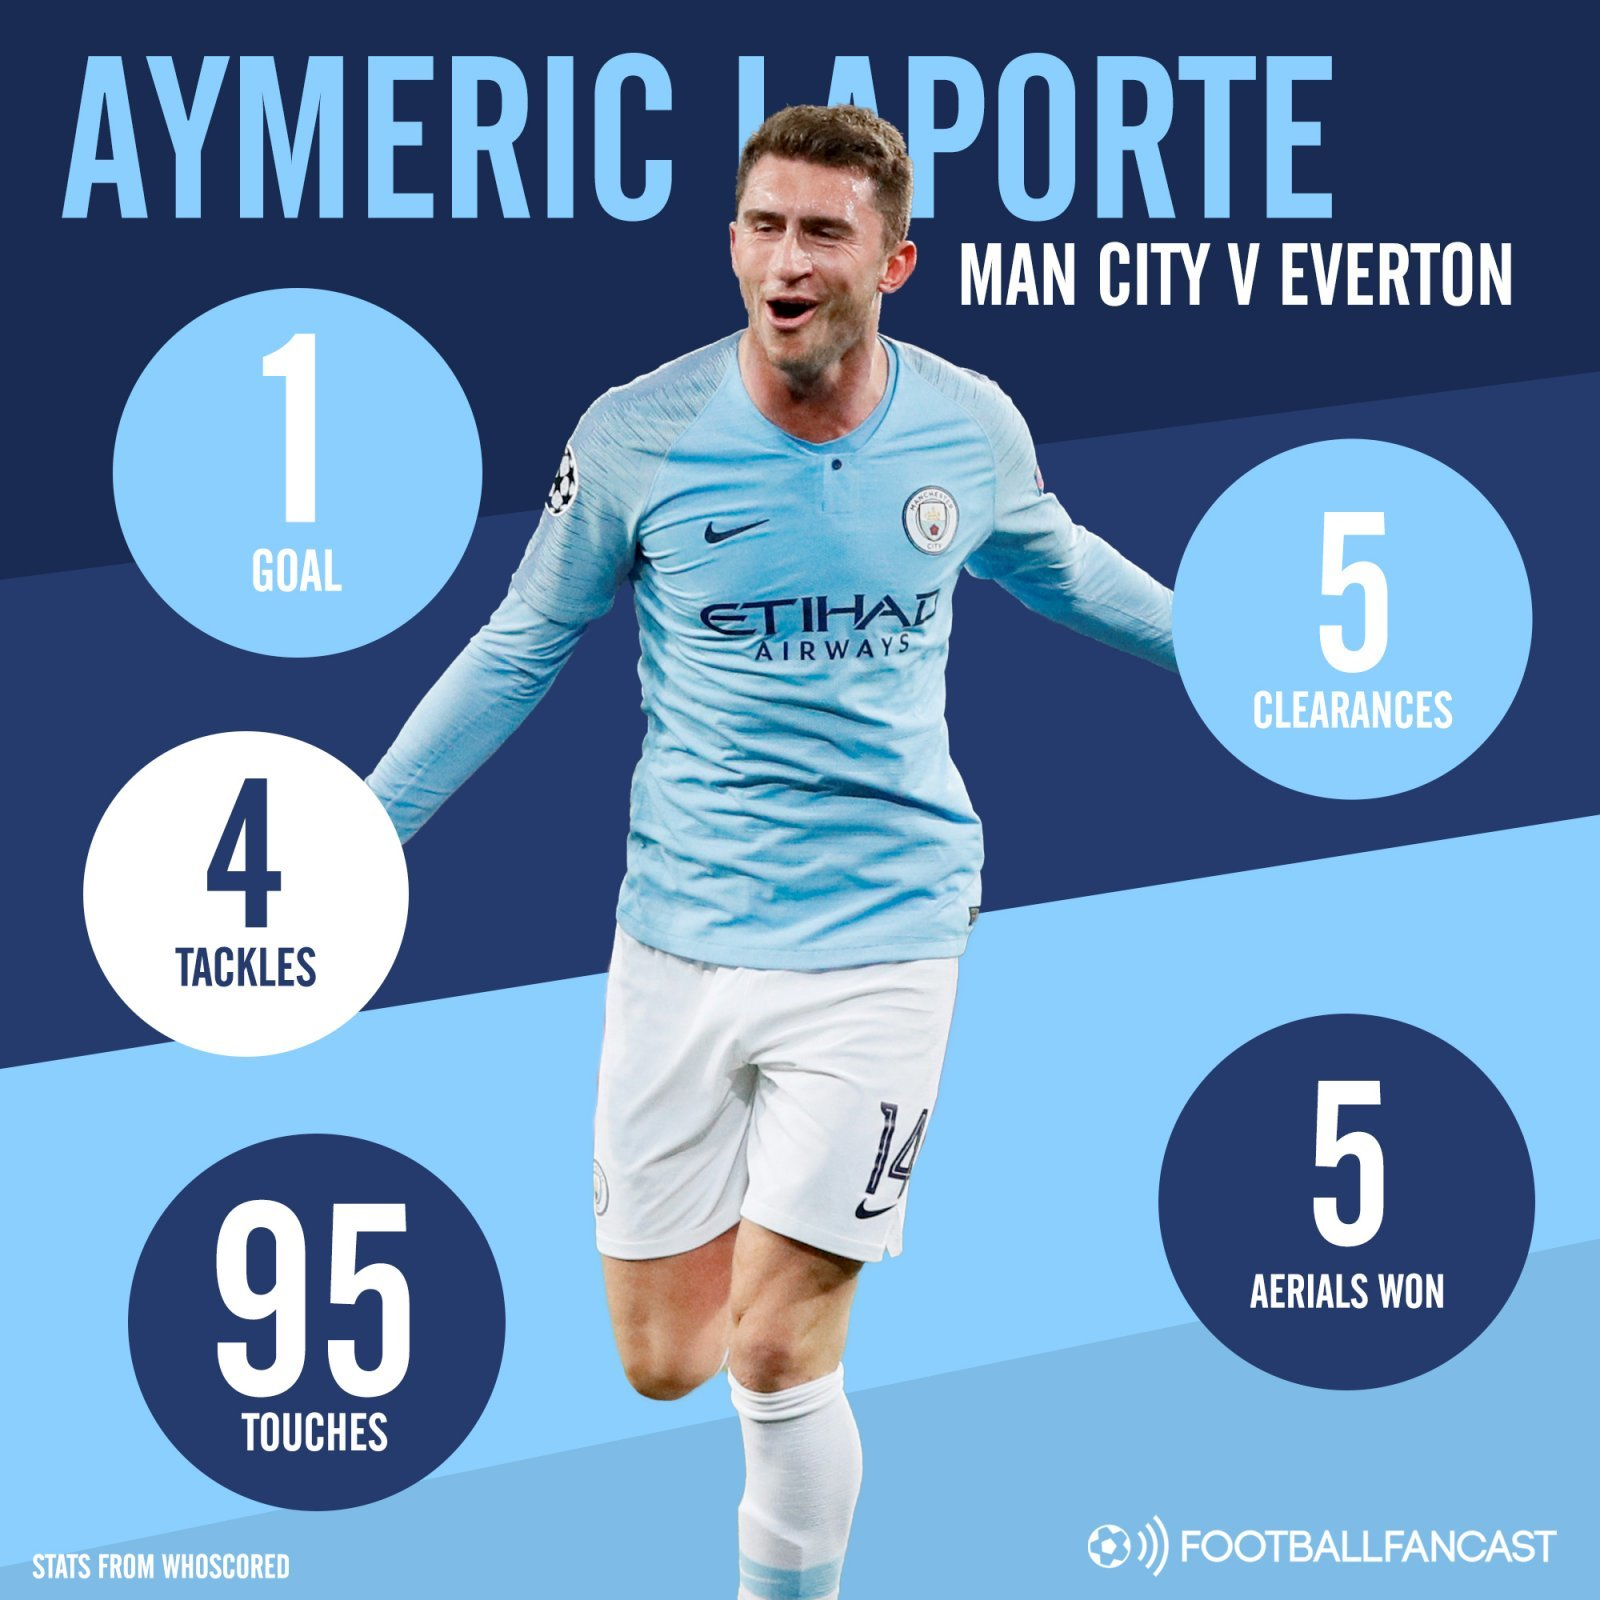 Aymeric Laporte - Opinion: Man City man proves he can stop one of the biggest threats team will face on Sunday